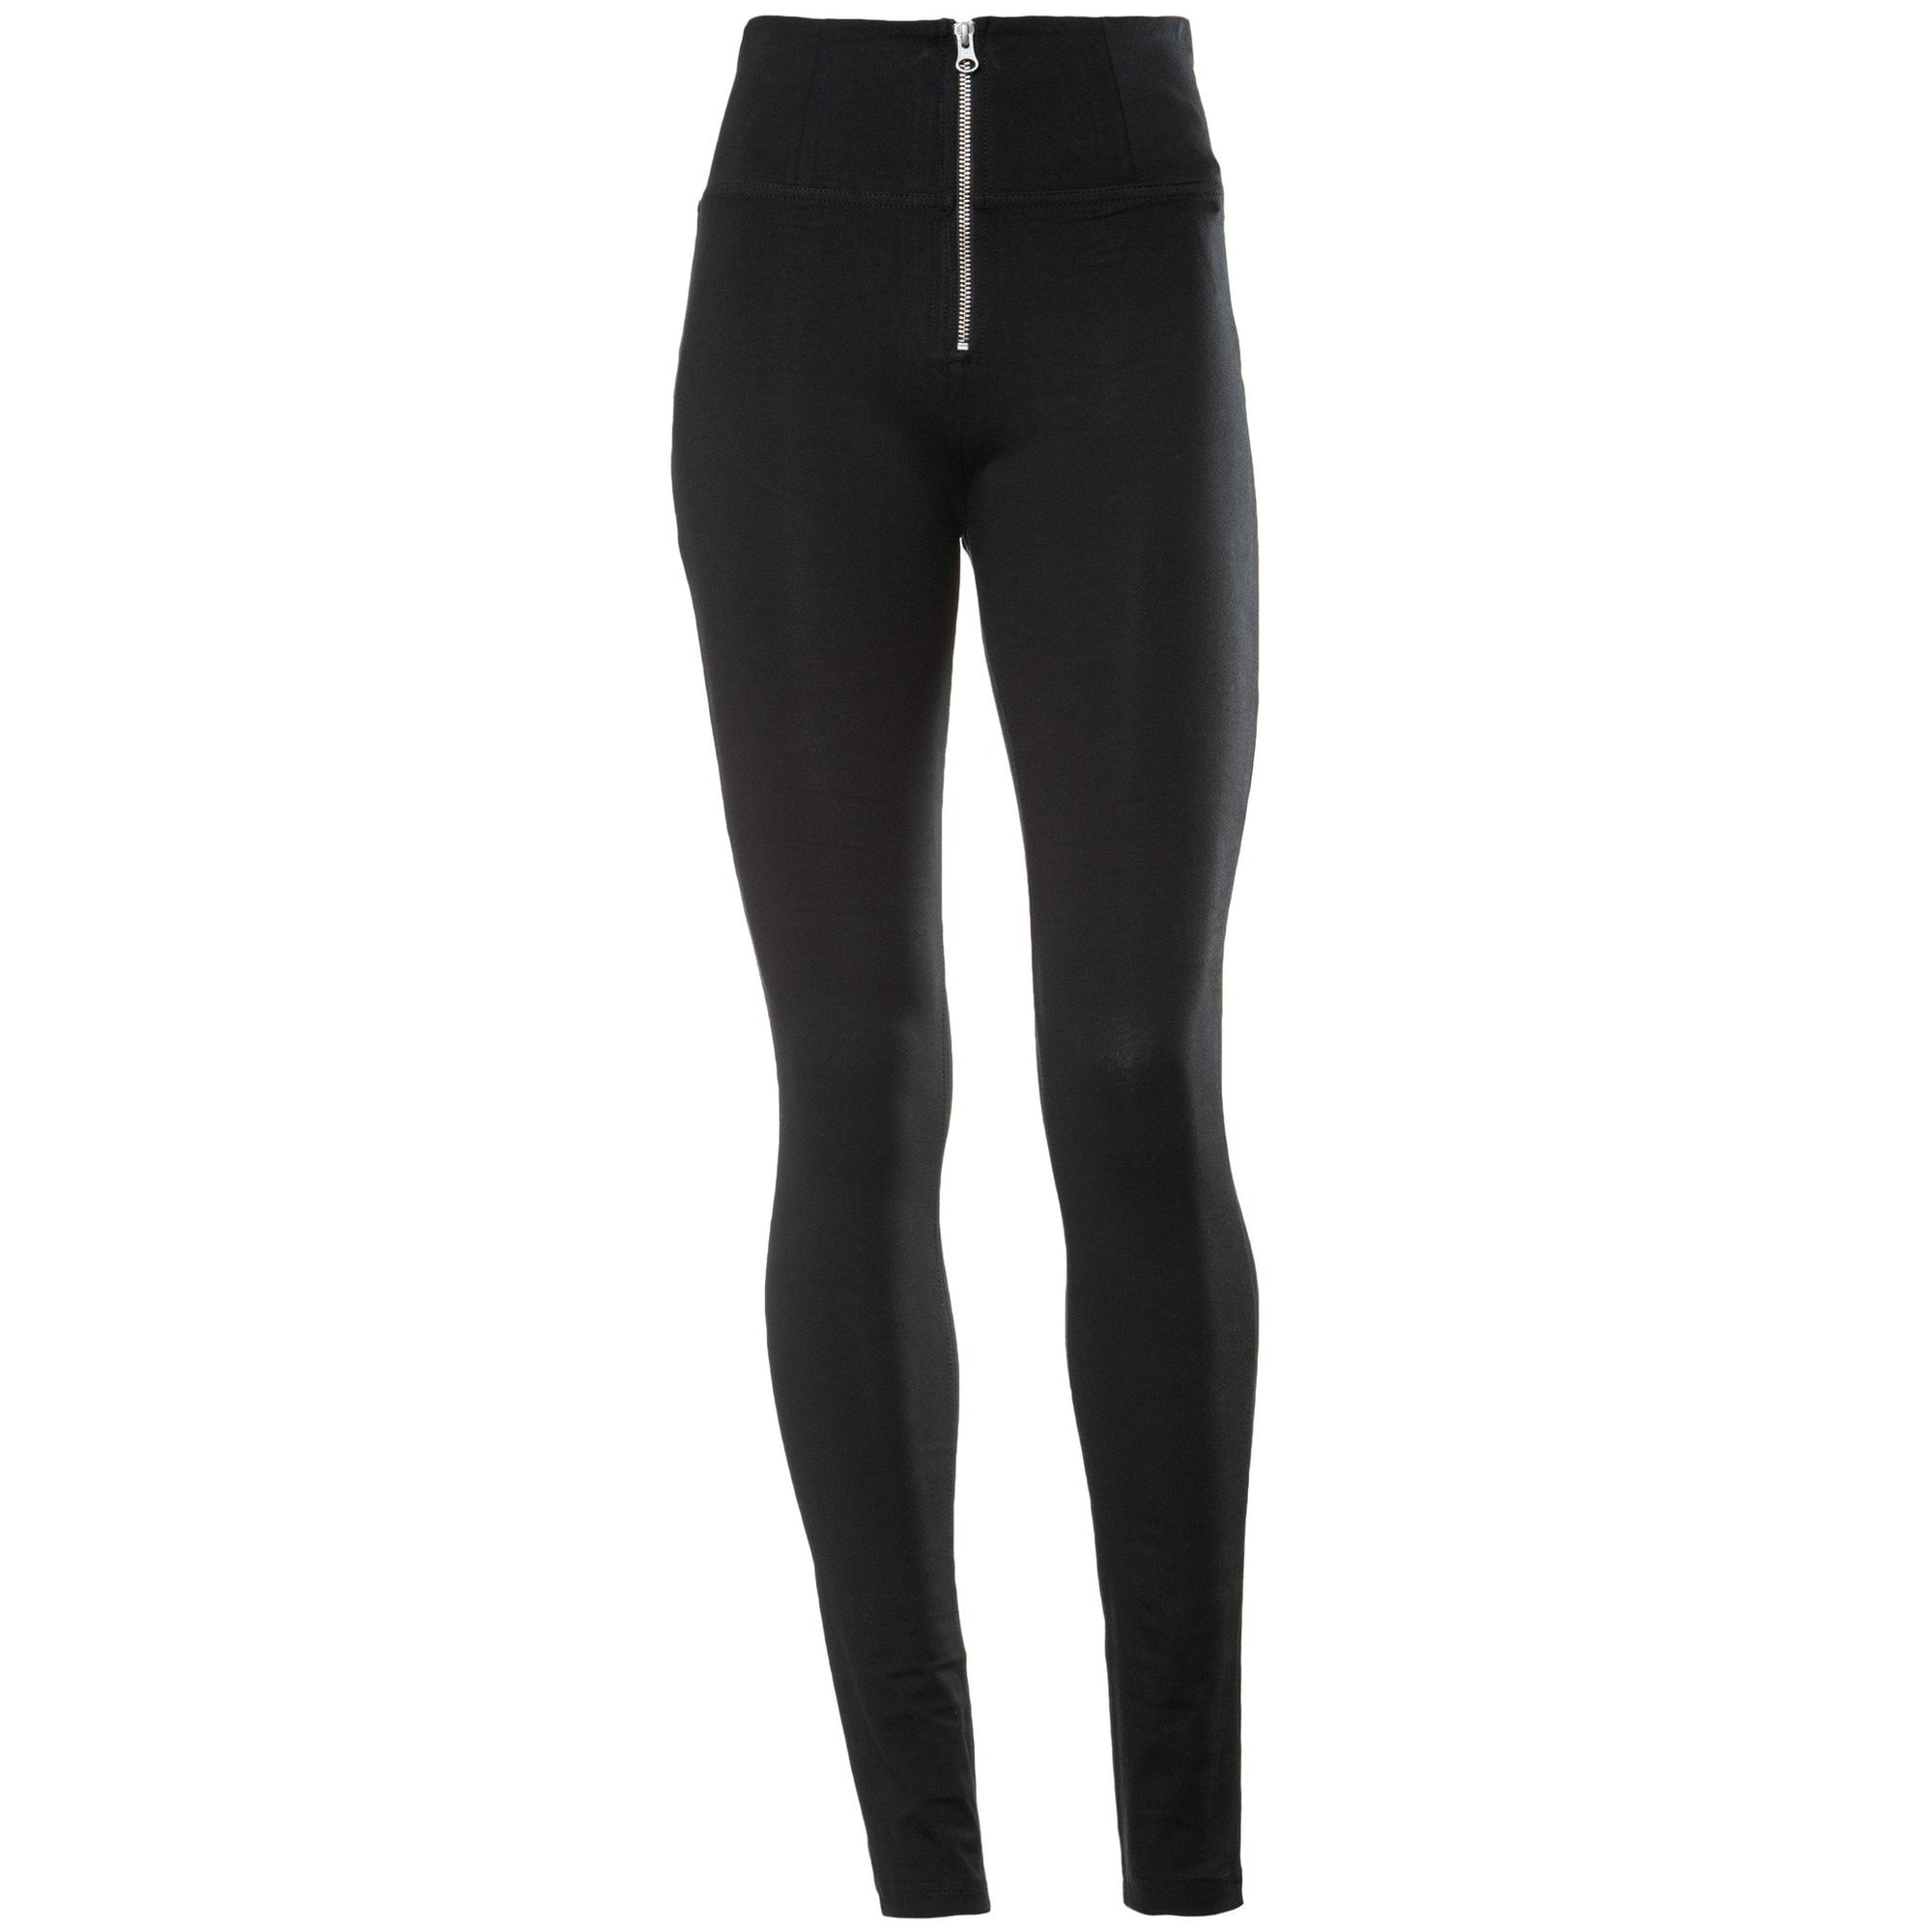 FREDDY WR.UP High Rise SKINNY - Black - LIVIFY  - 2